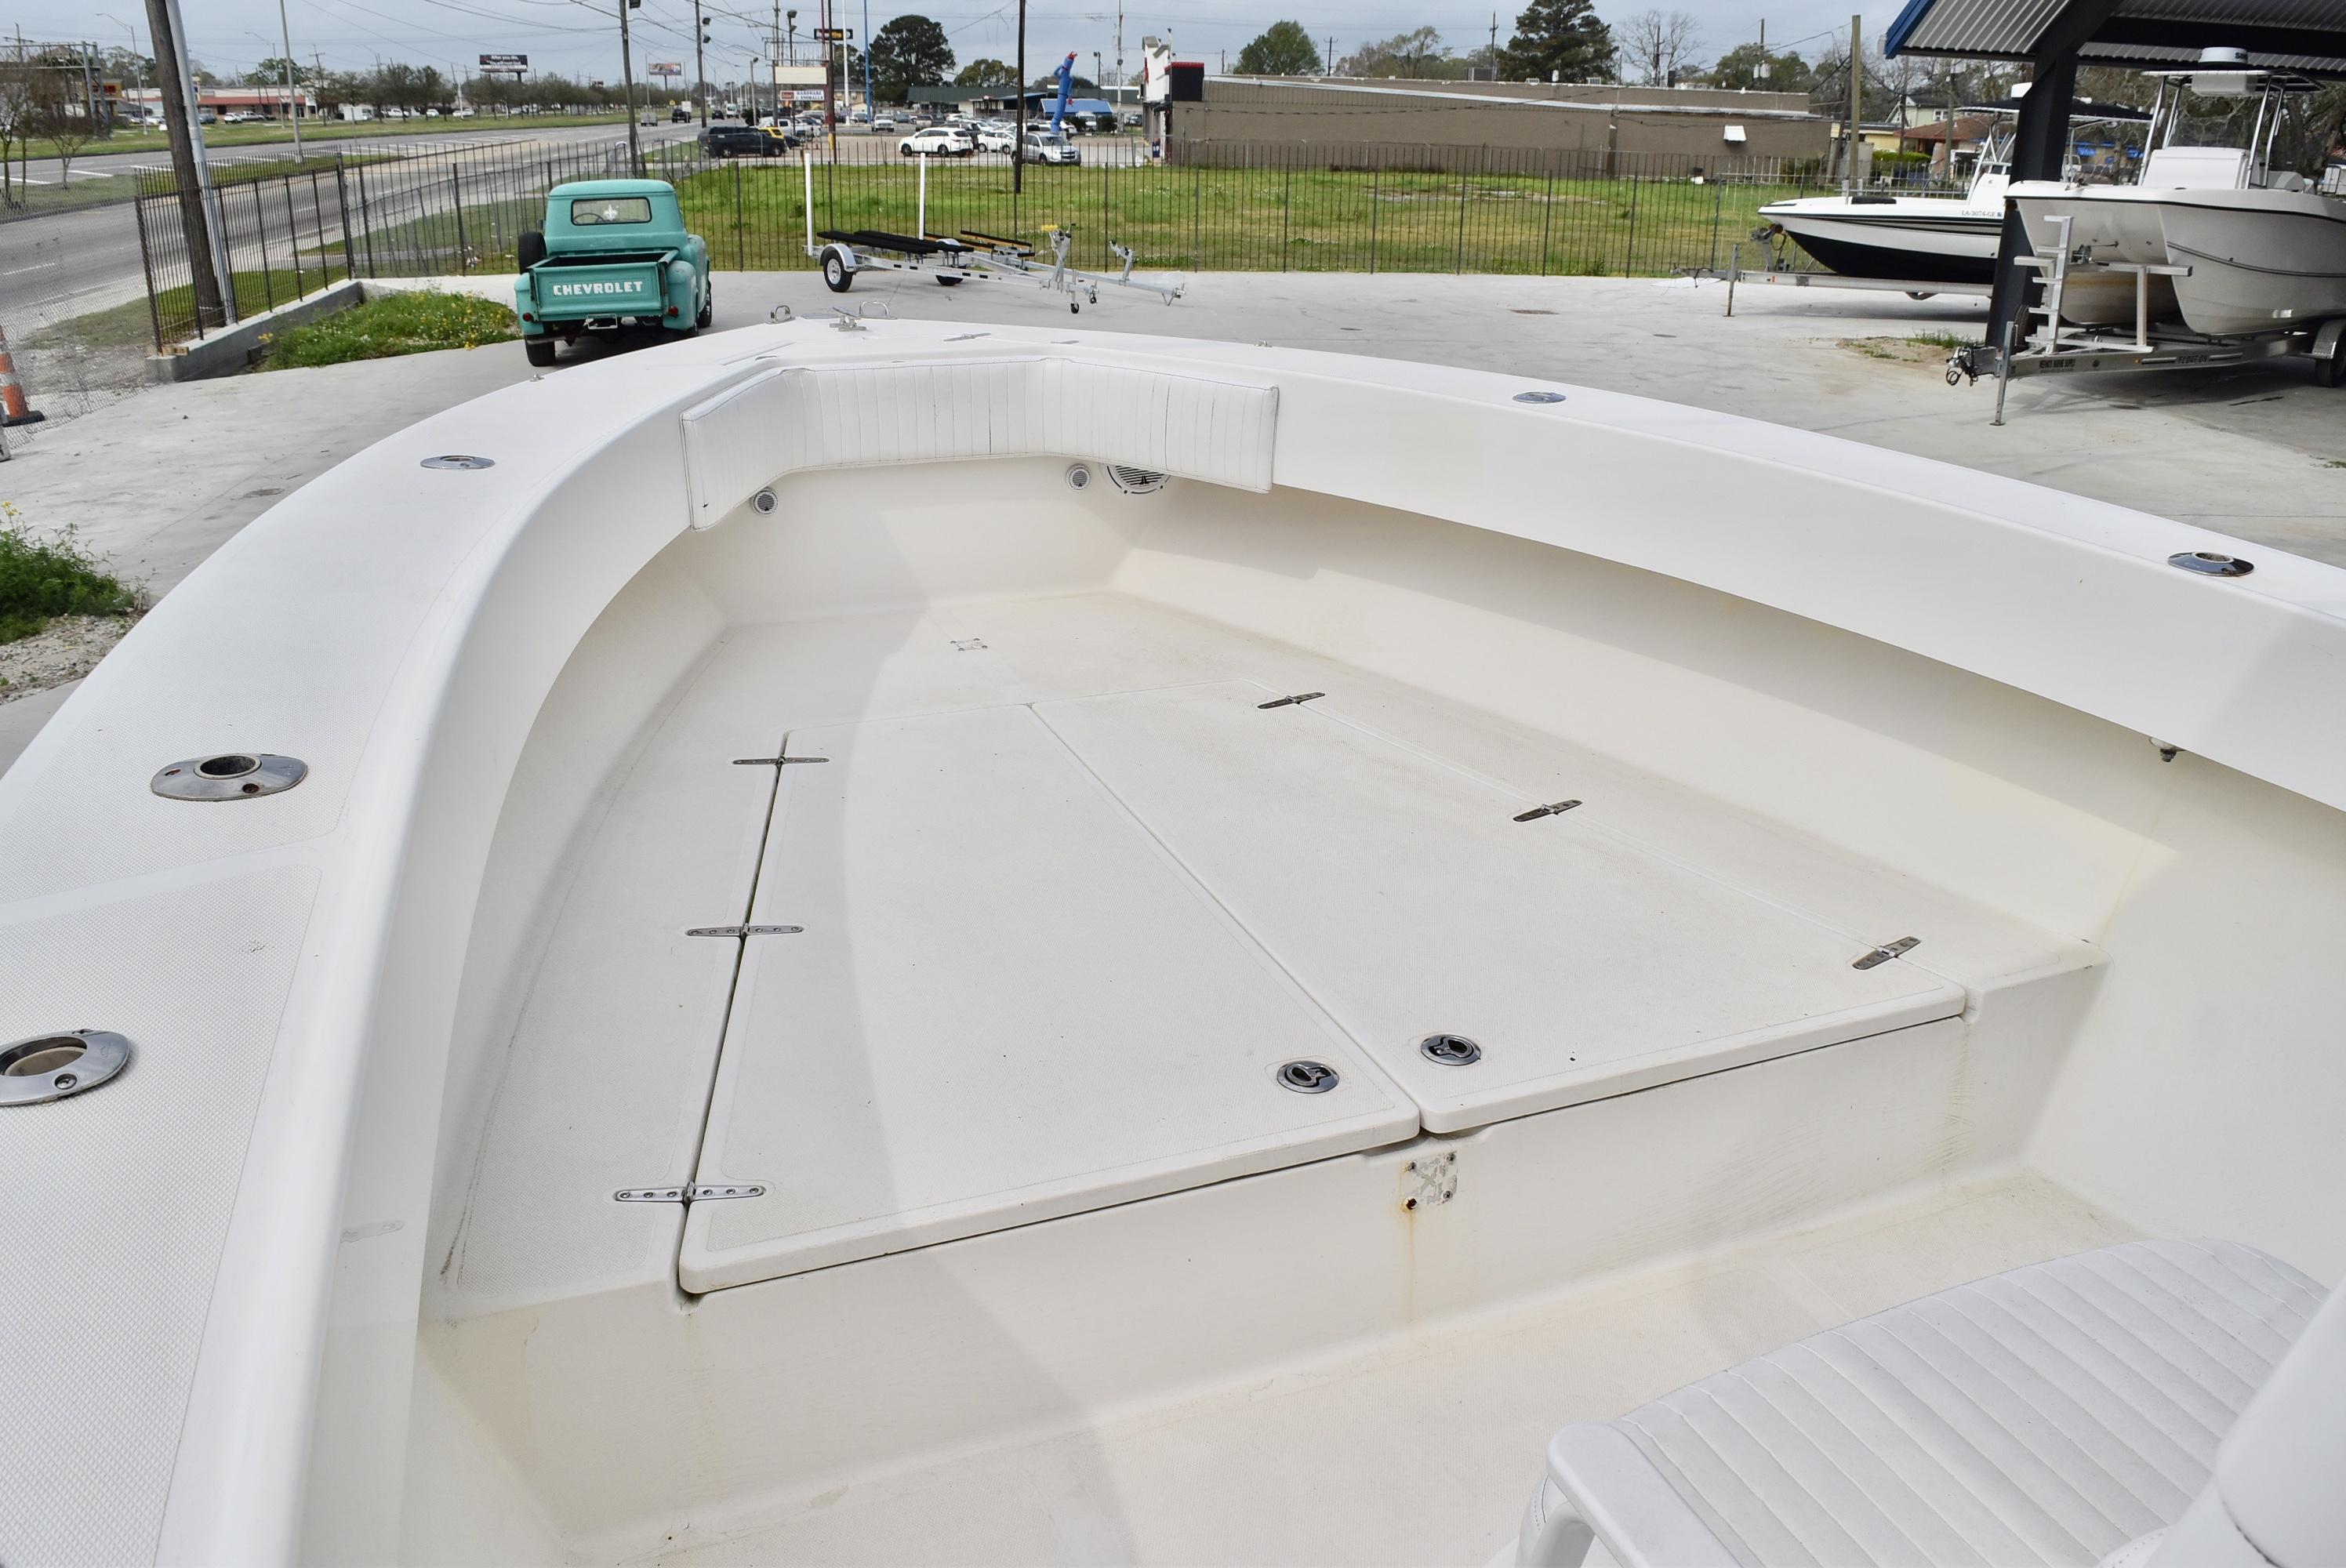 1998 Venture boat for sale, model of the boat is 34 & Image # 16 of 18